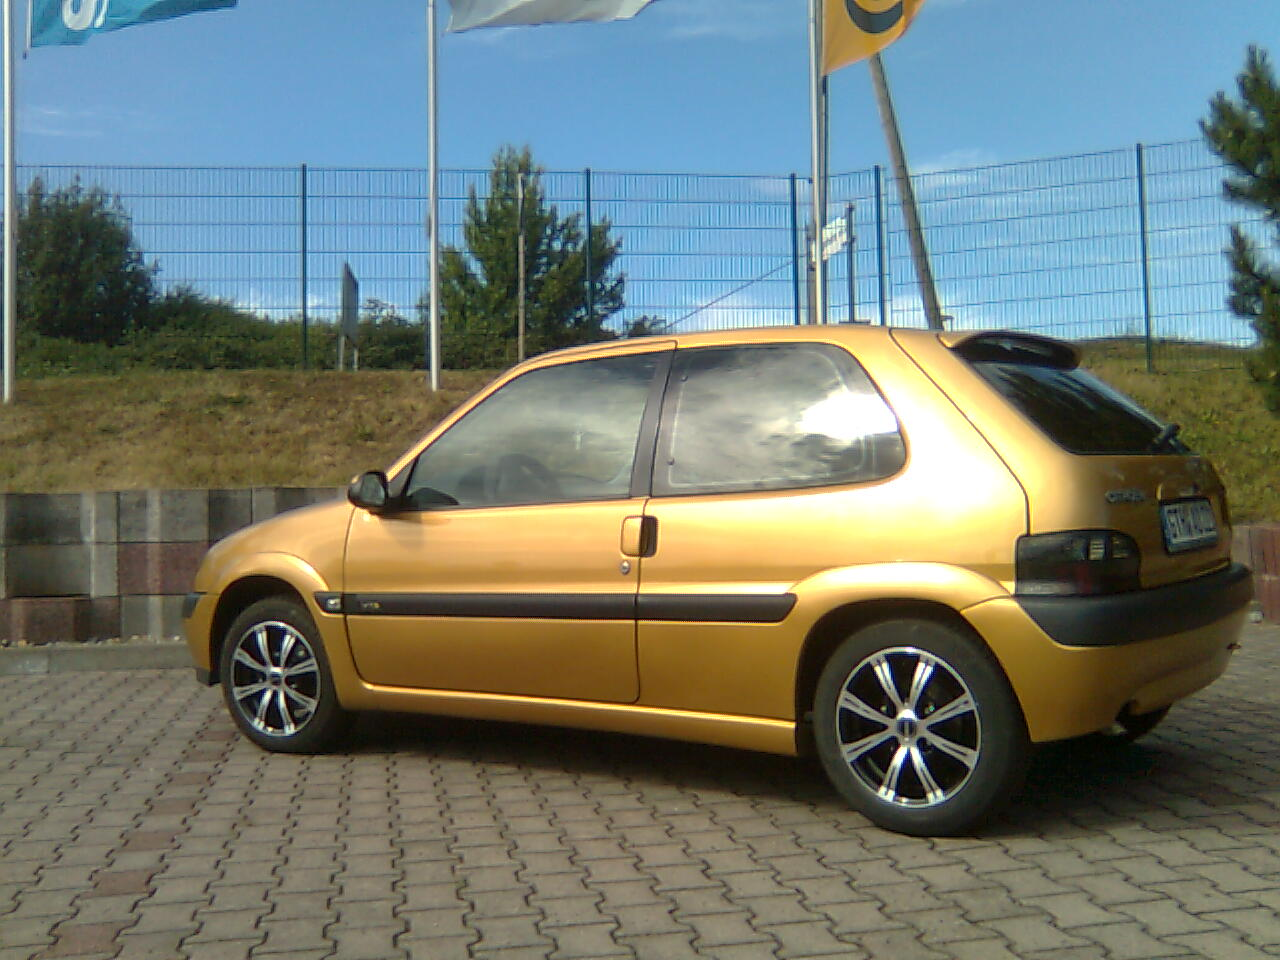 file citroen saxo 1 4 vts gold jpg